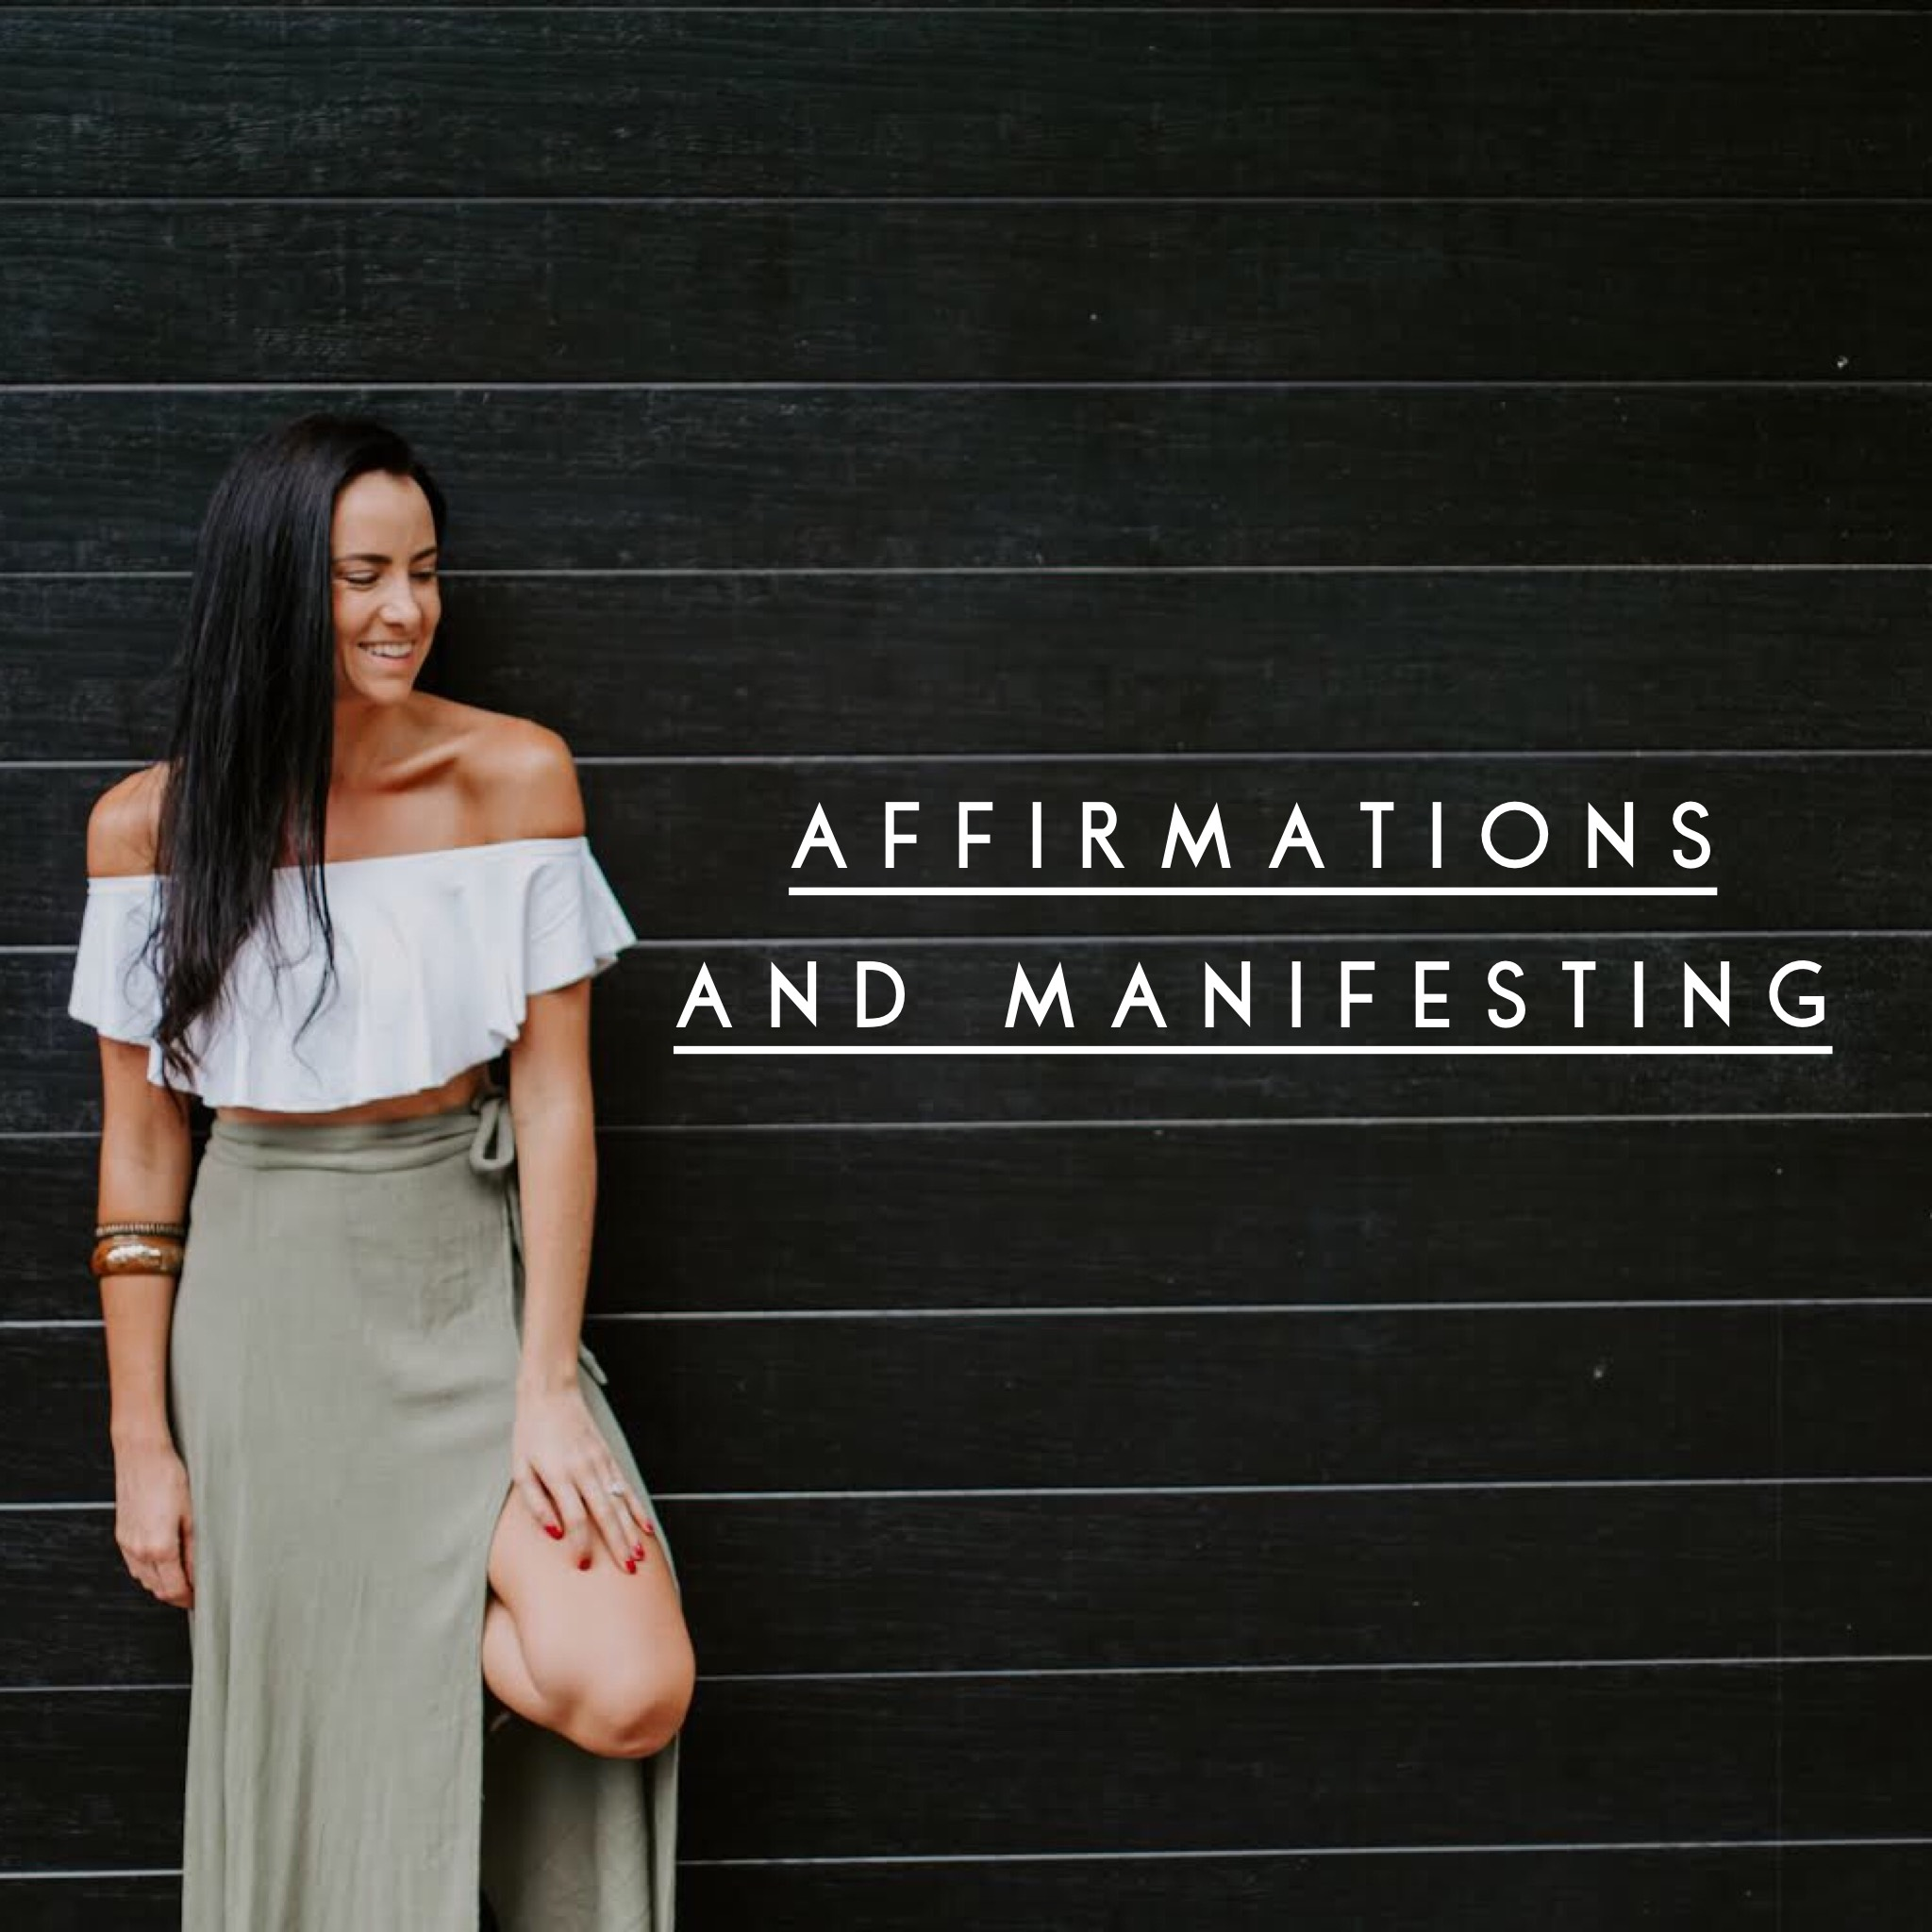 Affirmations_and_manifesting_how_to_make_affirmations_work.jpg